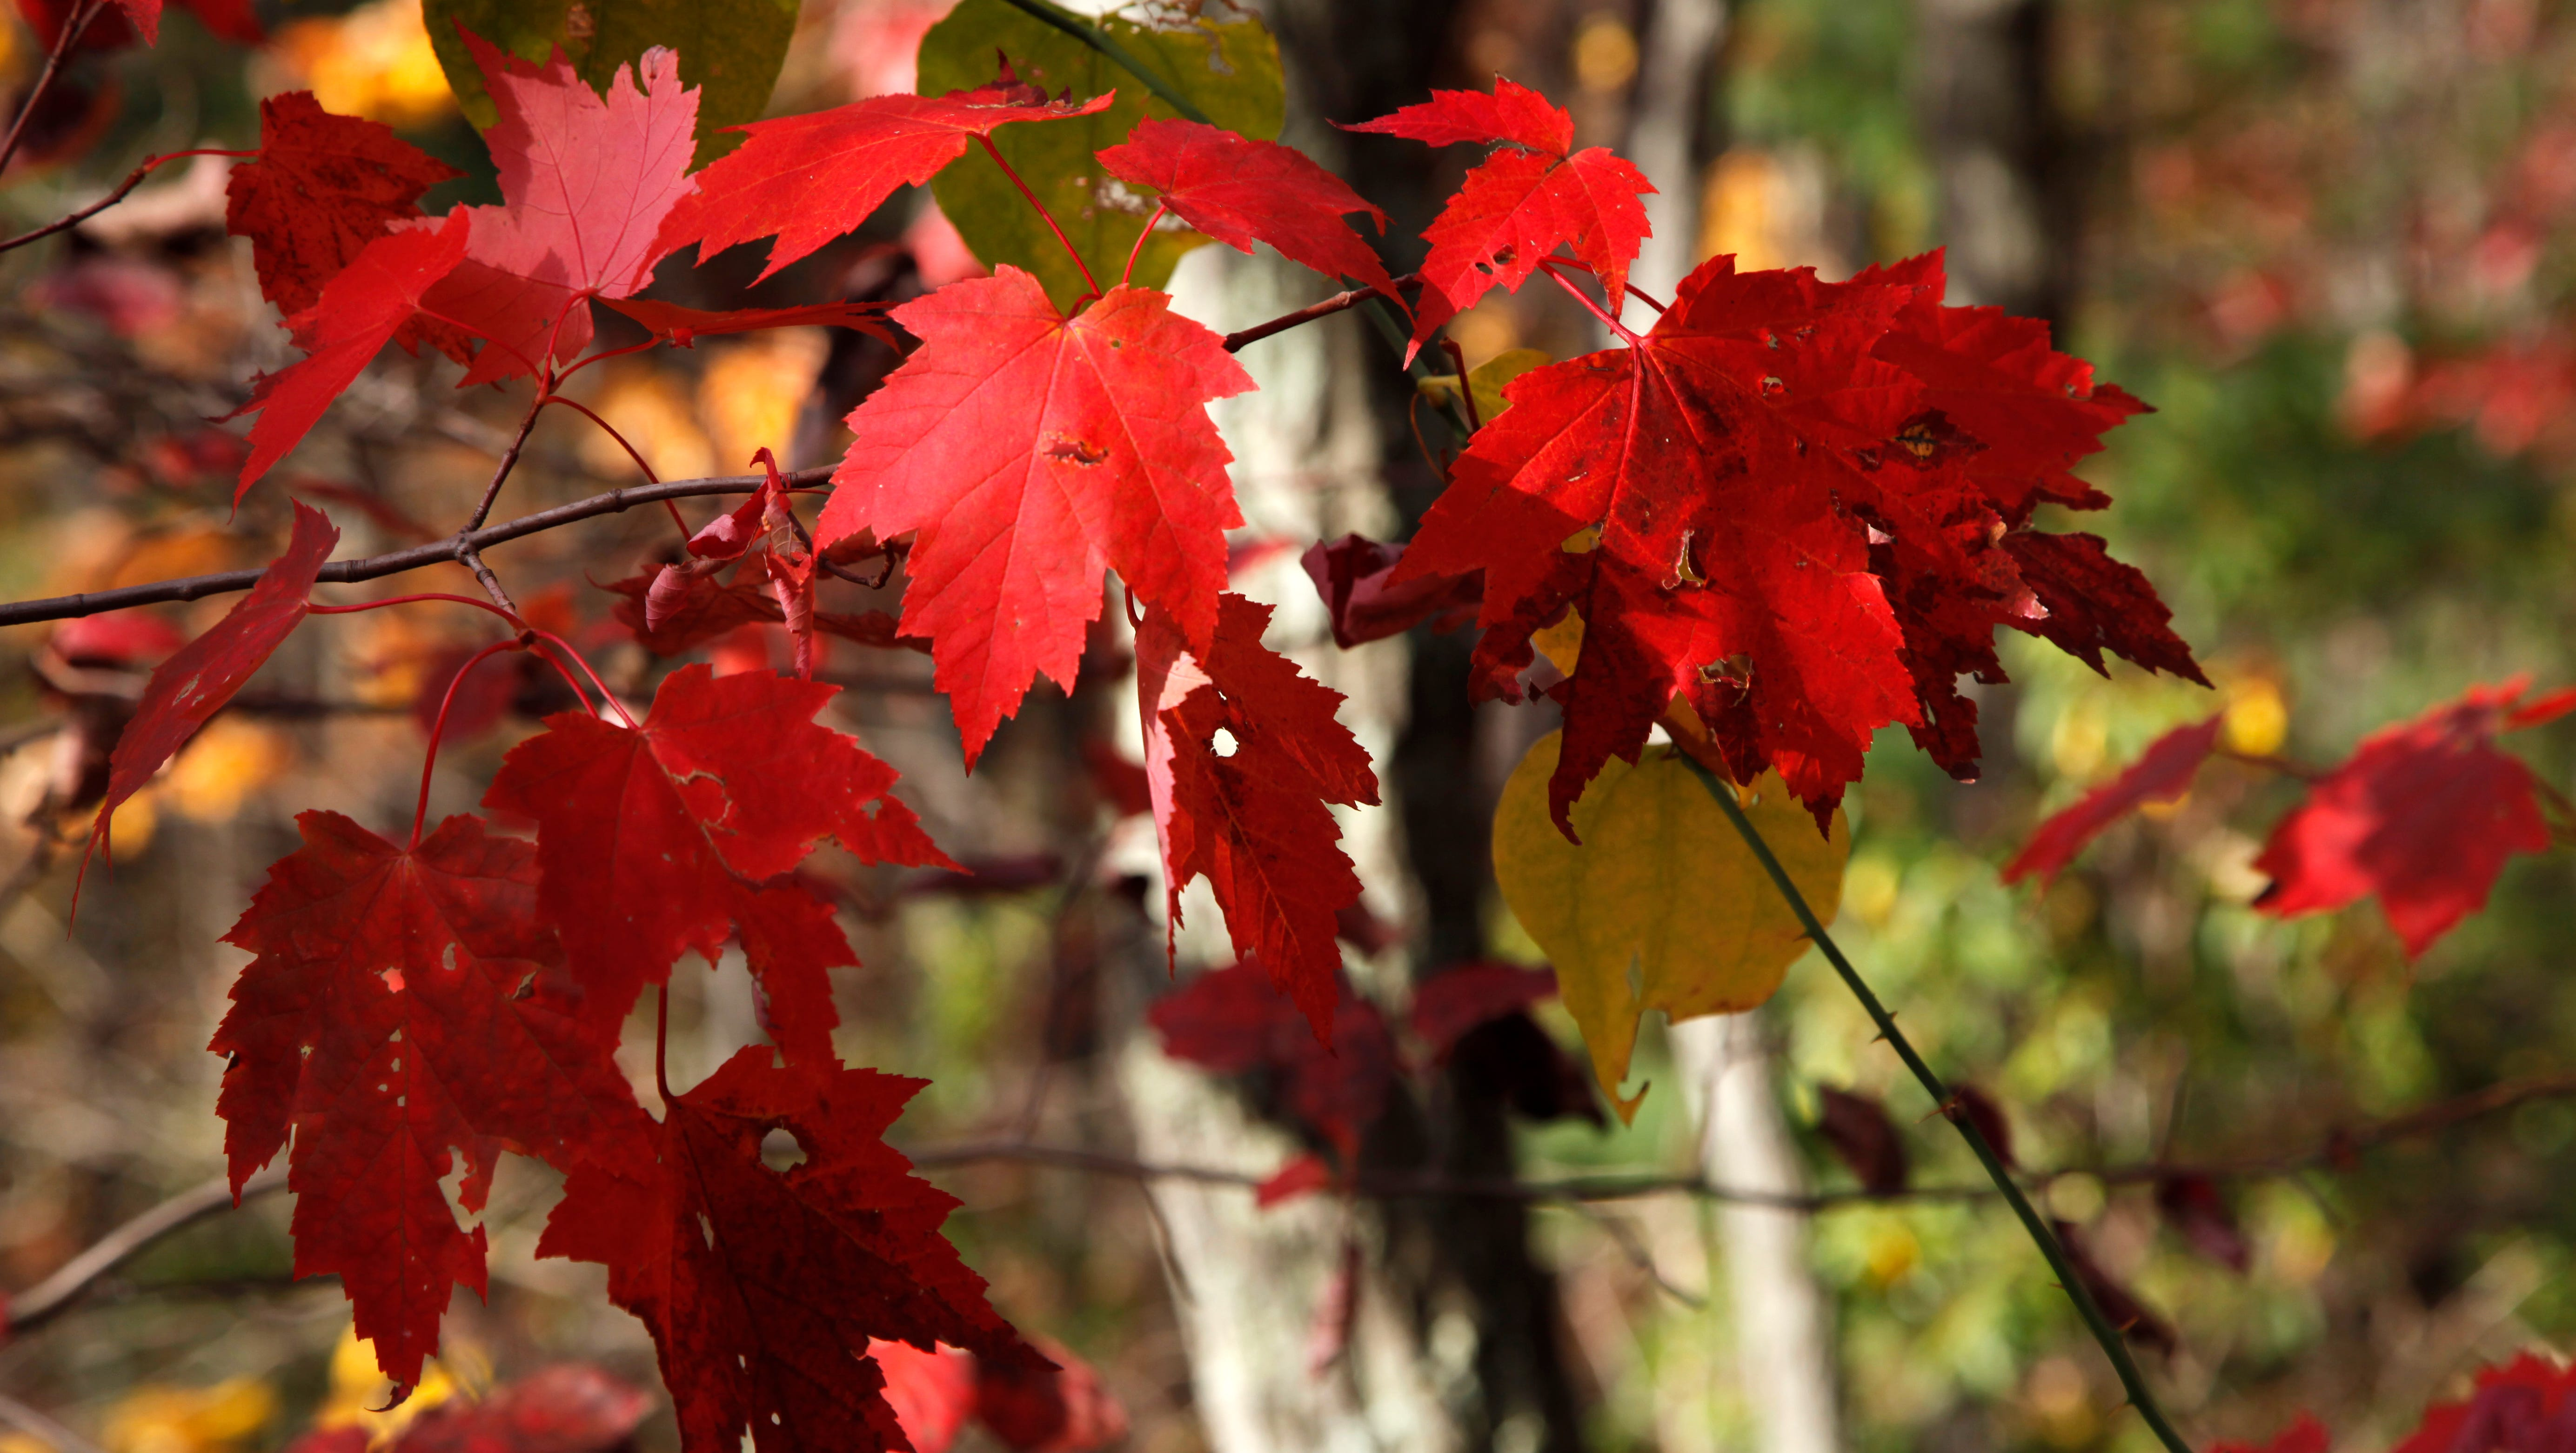 Dreaming of fall: Color vibrancy, duration will depend on weather